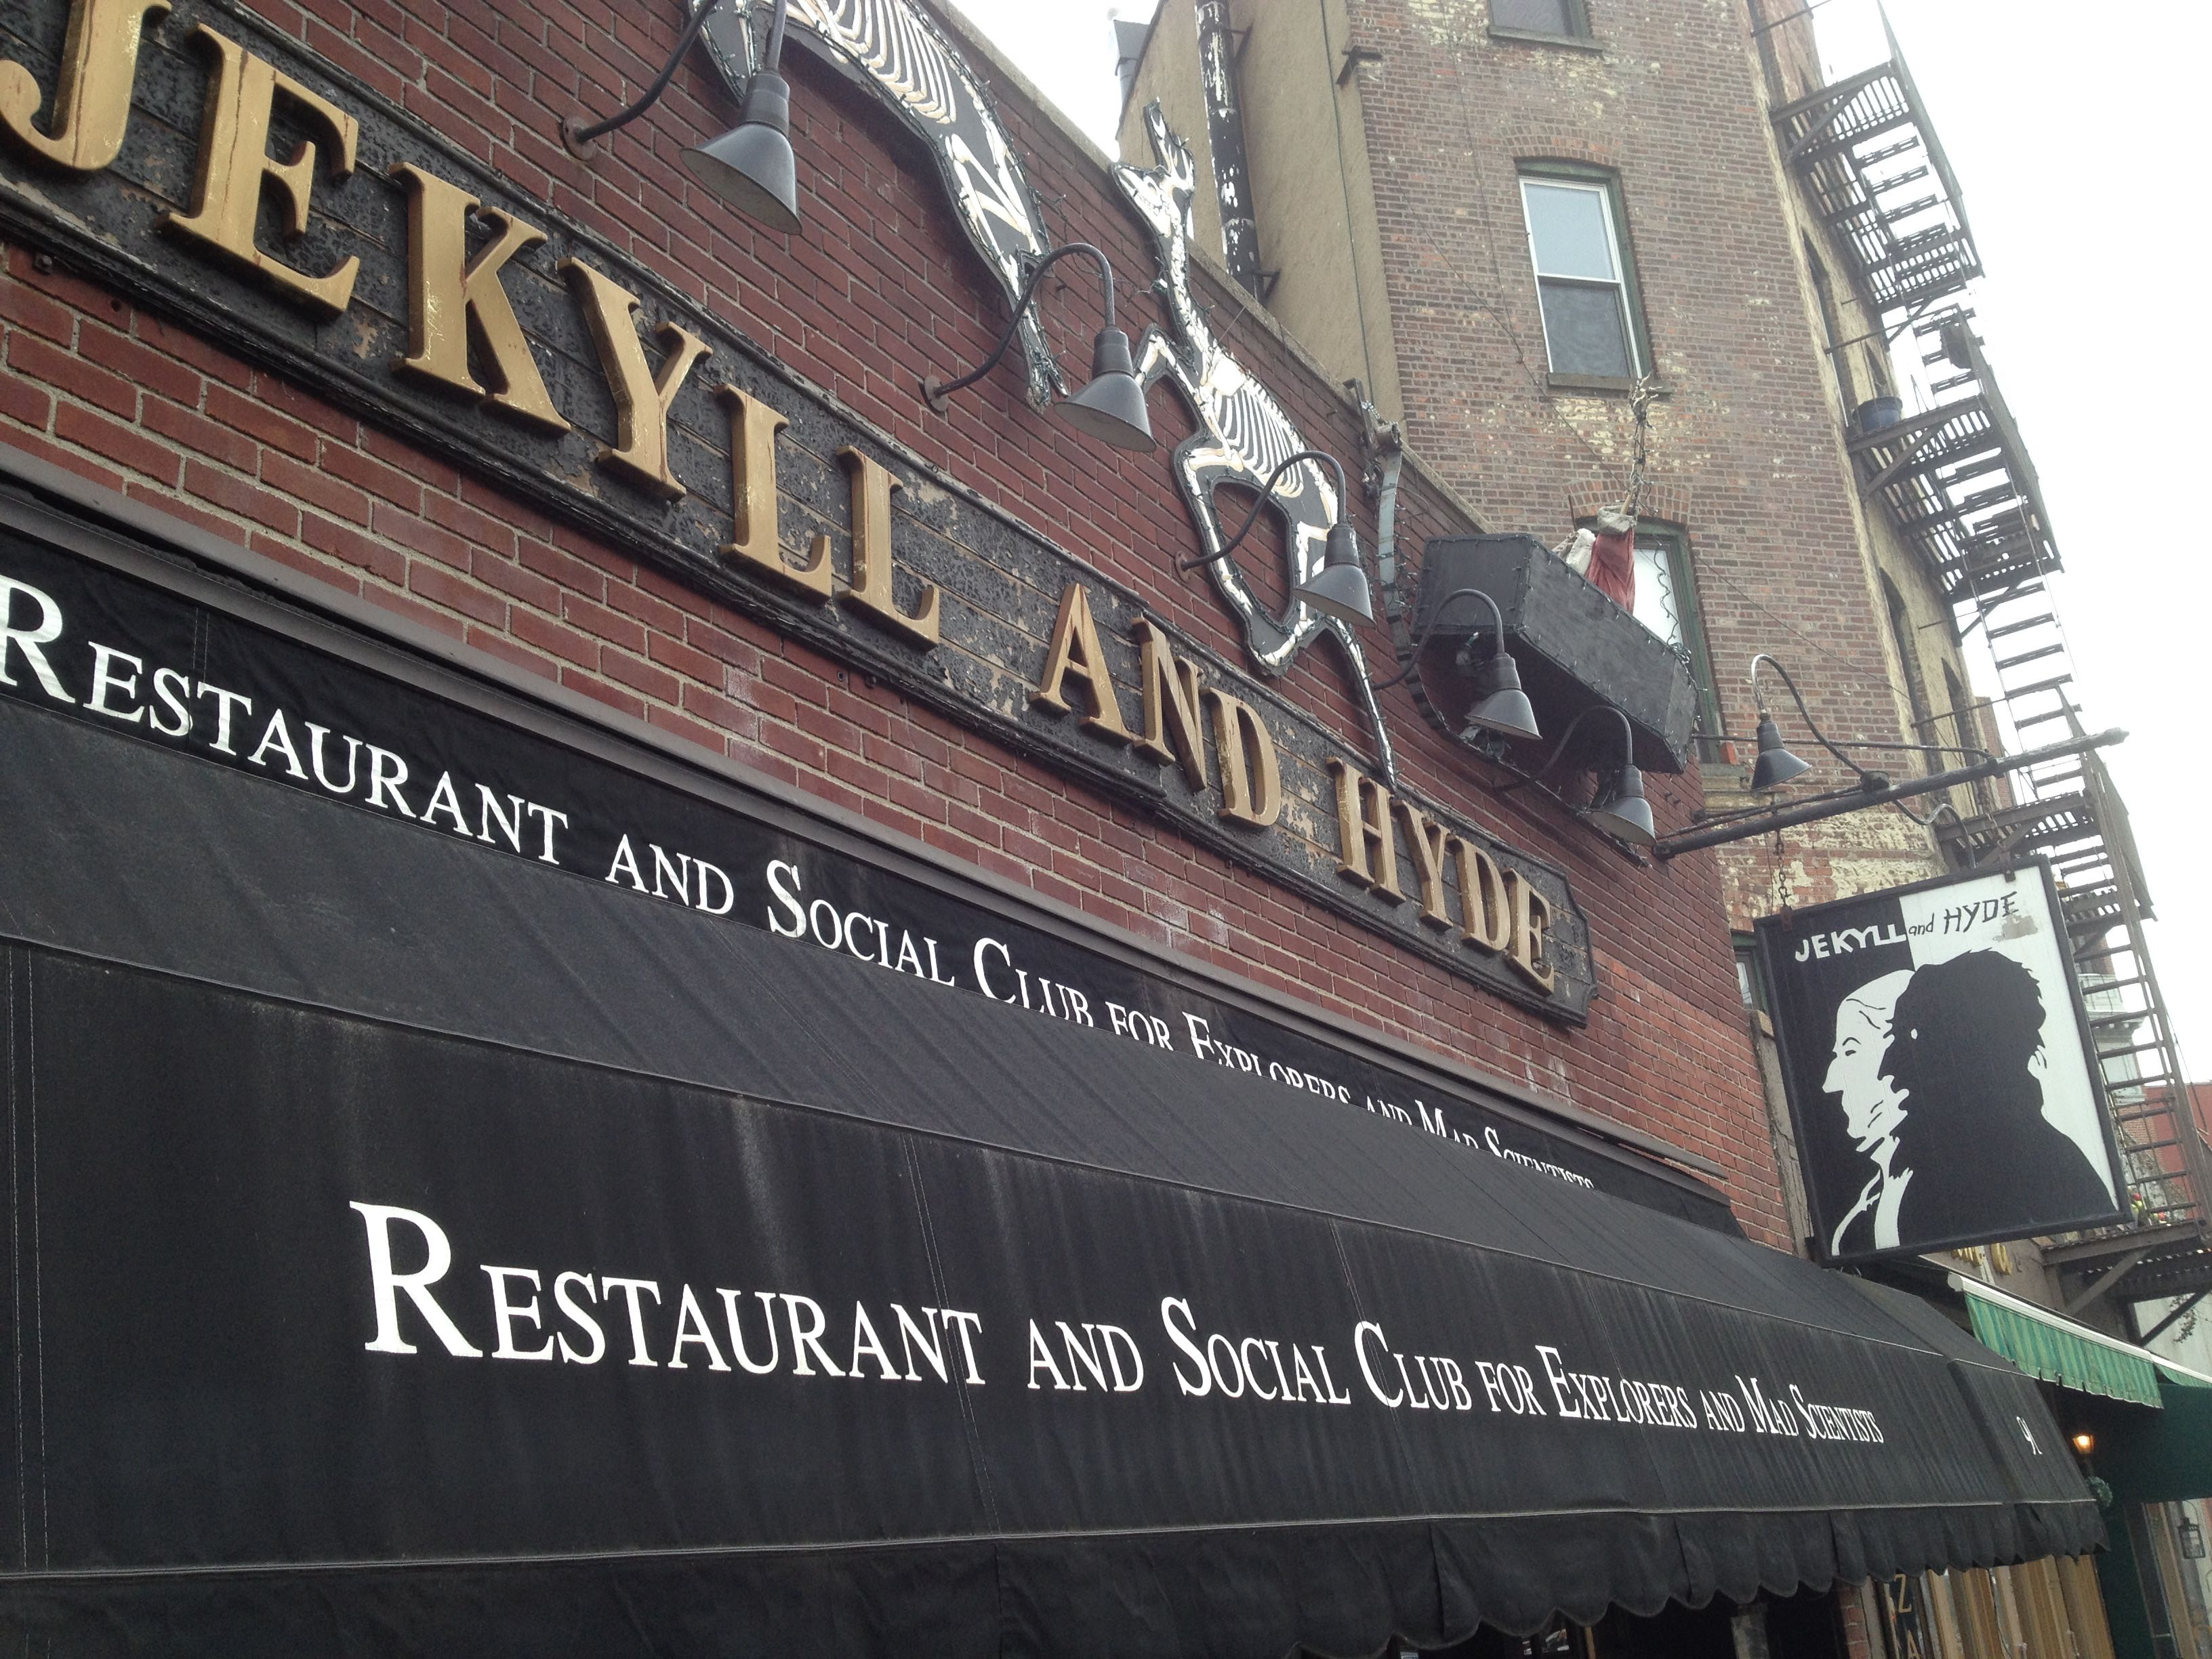 Jekyll and Hyde: restaurant and social club for explorers and mad scientists